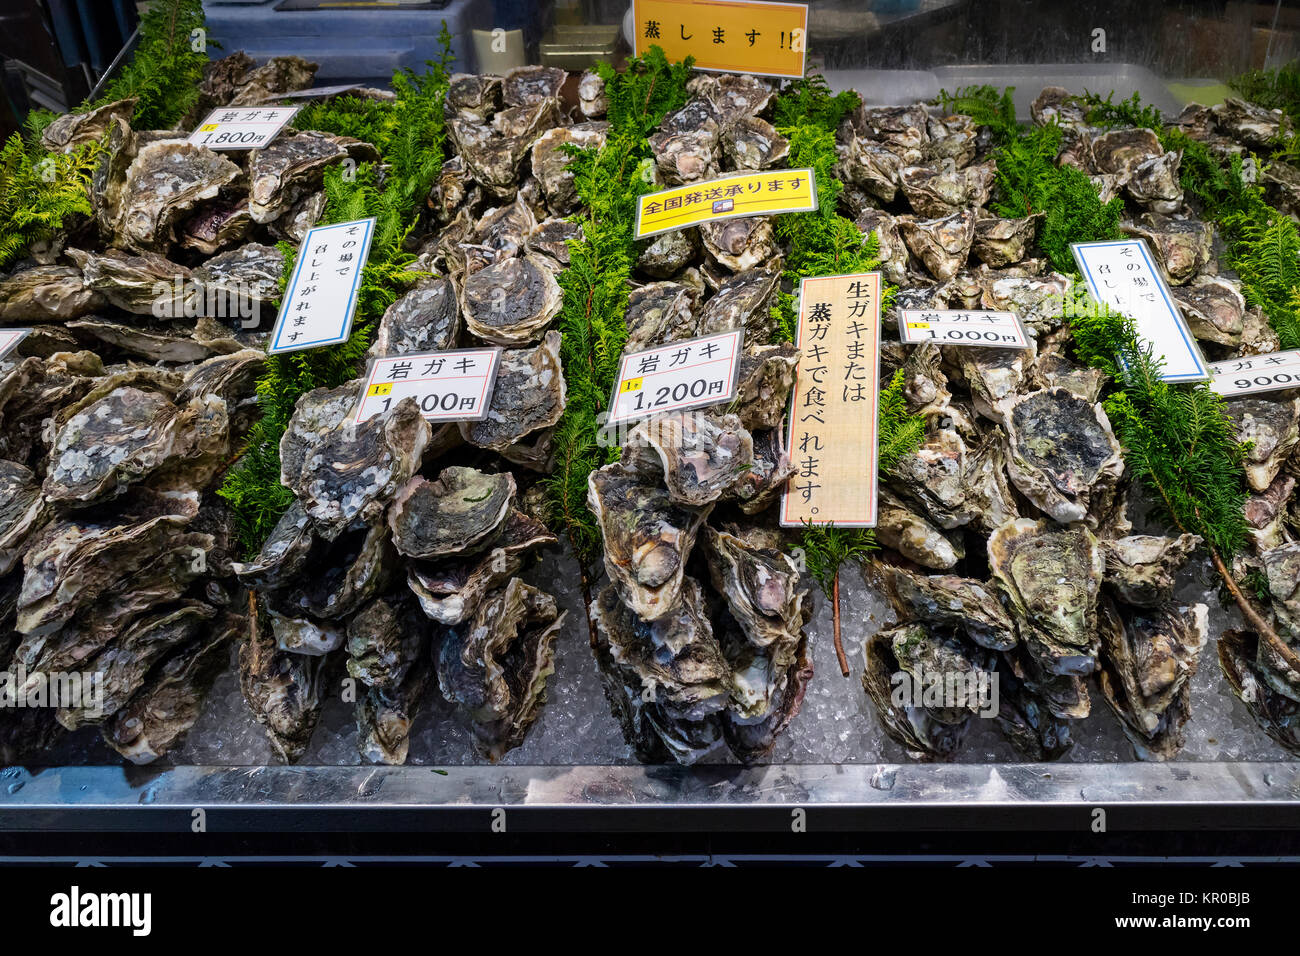 Kanazawa - Japan, June 8, 2017: Fresh raw oysters and price tags at the Omicho Market - Stock Image